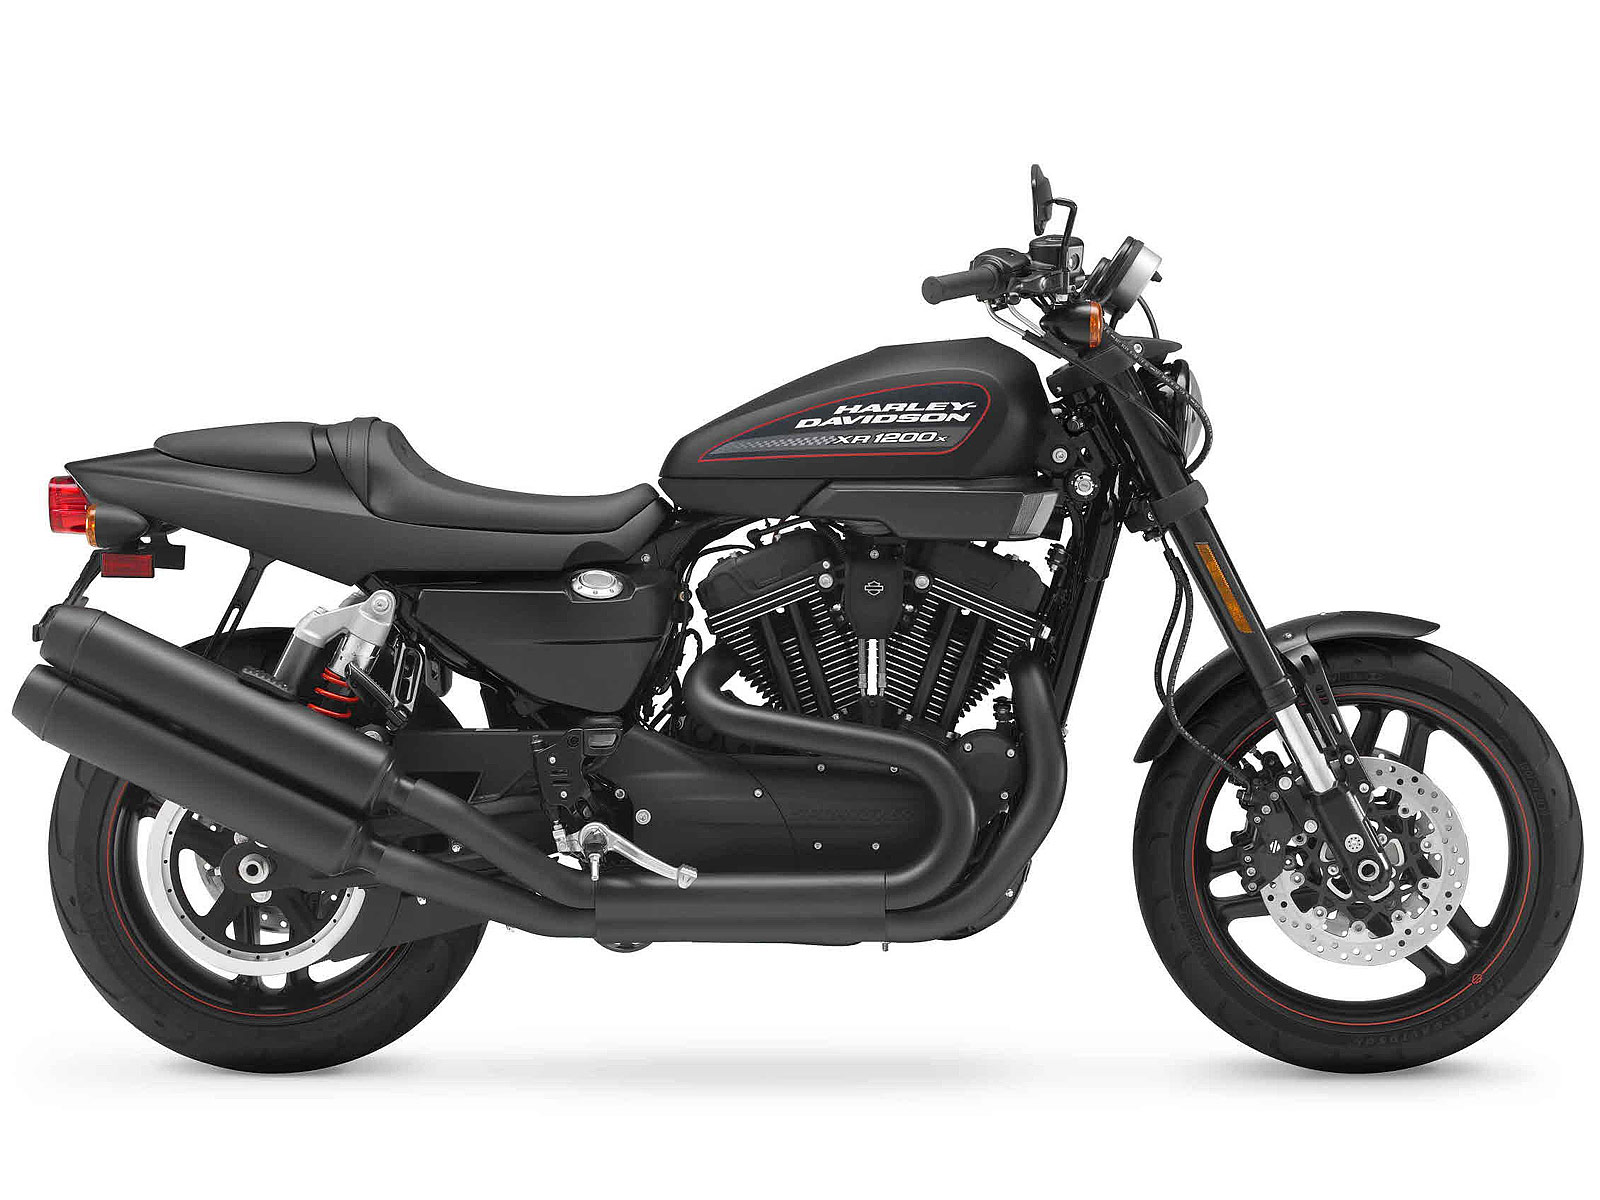 2012 harley davidson xr1200x pictures review specifications